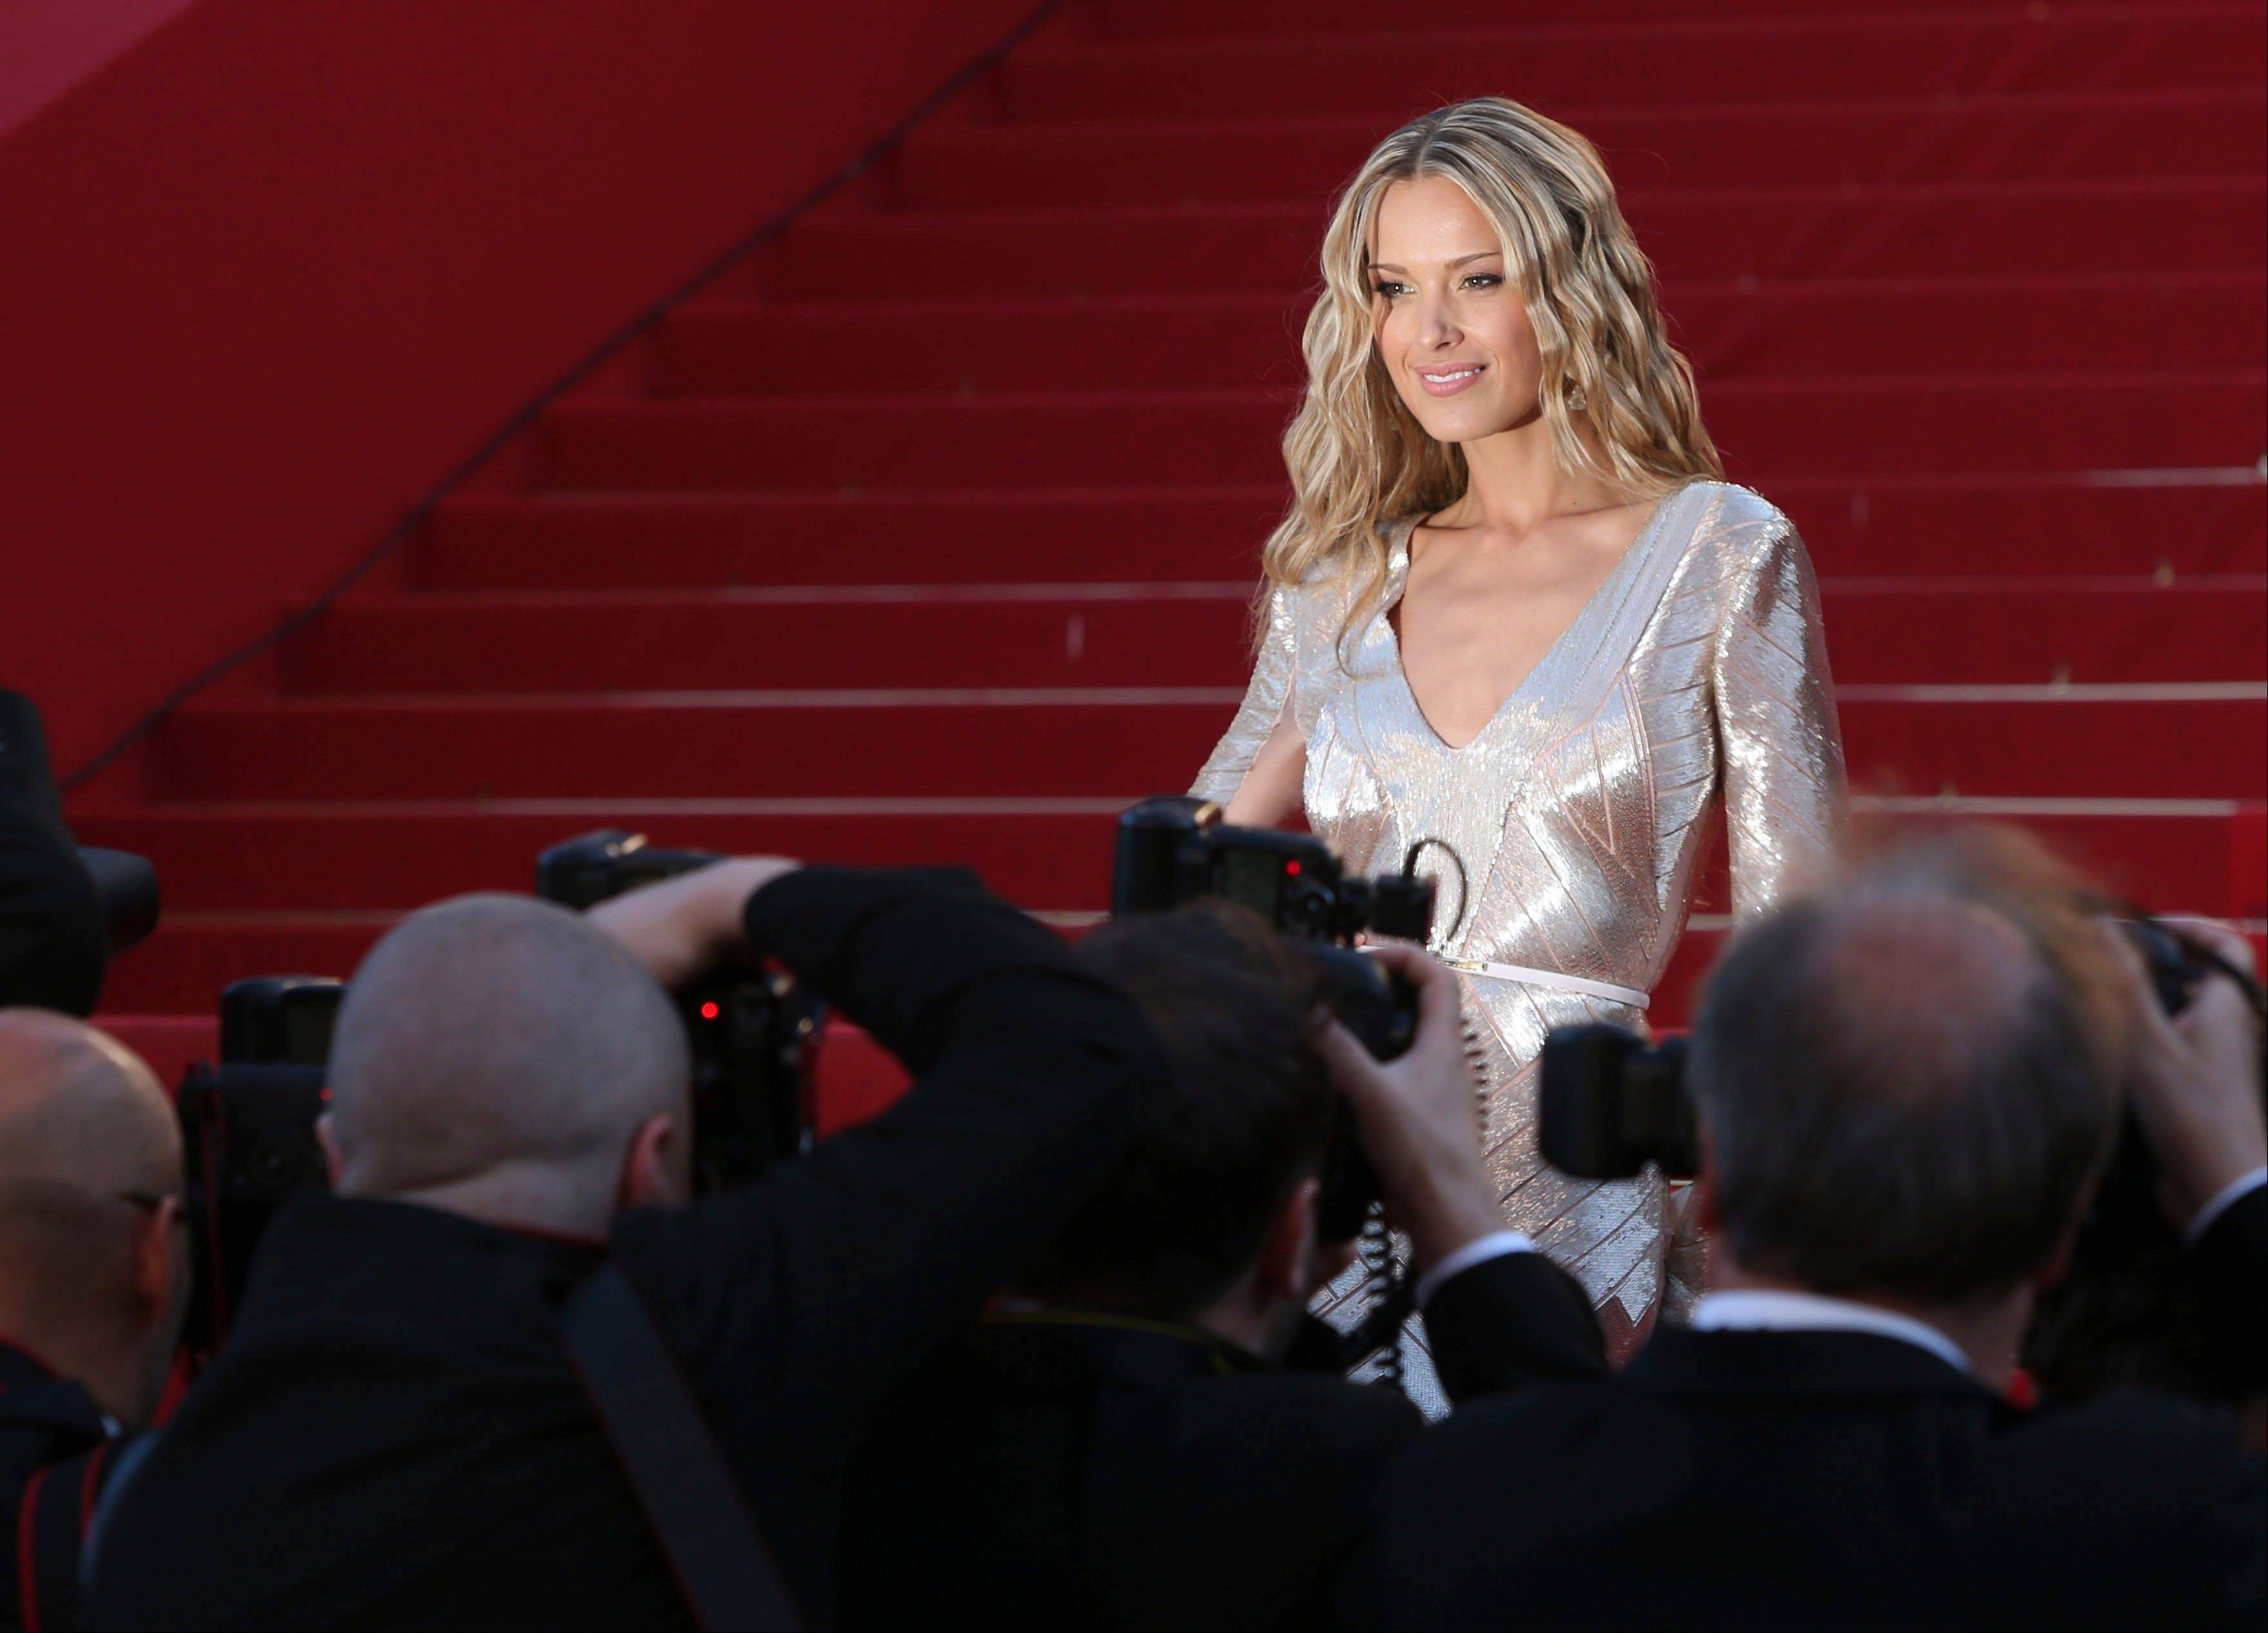 Model Petra Nemcova arrives on the red carpet Tuesday for the screening of Behind the Candelabra at the 66th international film festival, in Cannes.